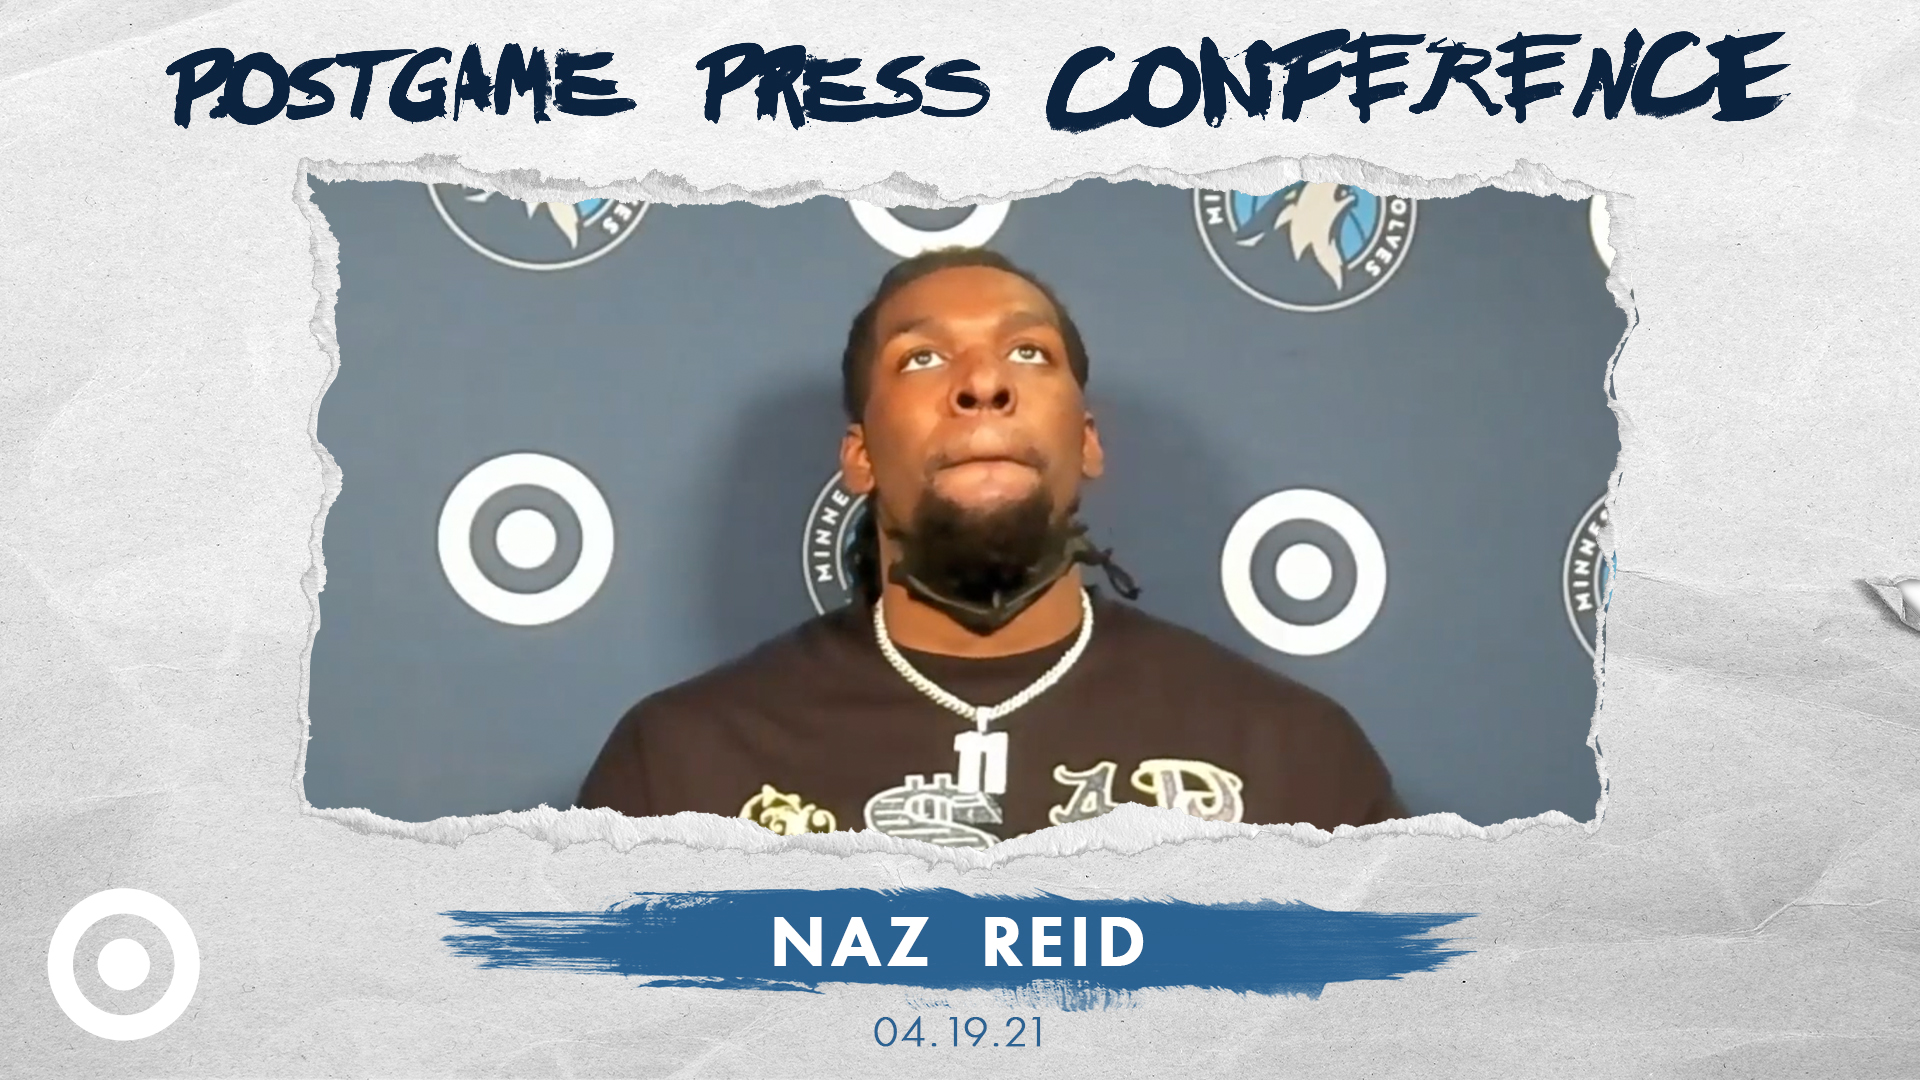 Naz Reid Postgame Press Conference - April 18, 2021